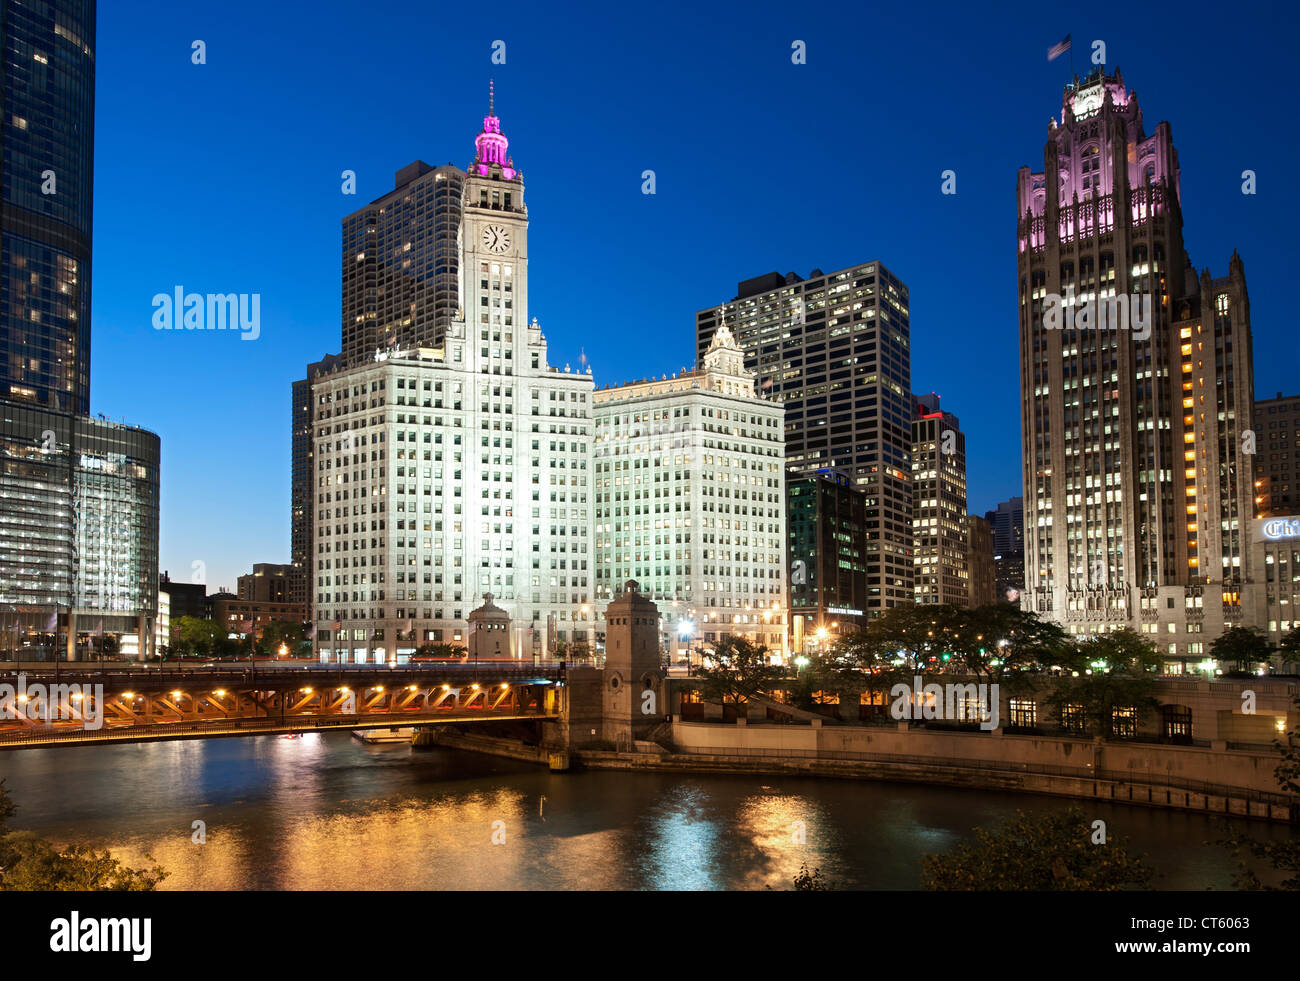 Night-time view of the Michigan Avenue Bridge (officially DuSable Bridge) and the Wrigley building and Tribune Tower - Stock Image